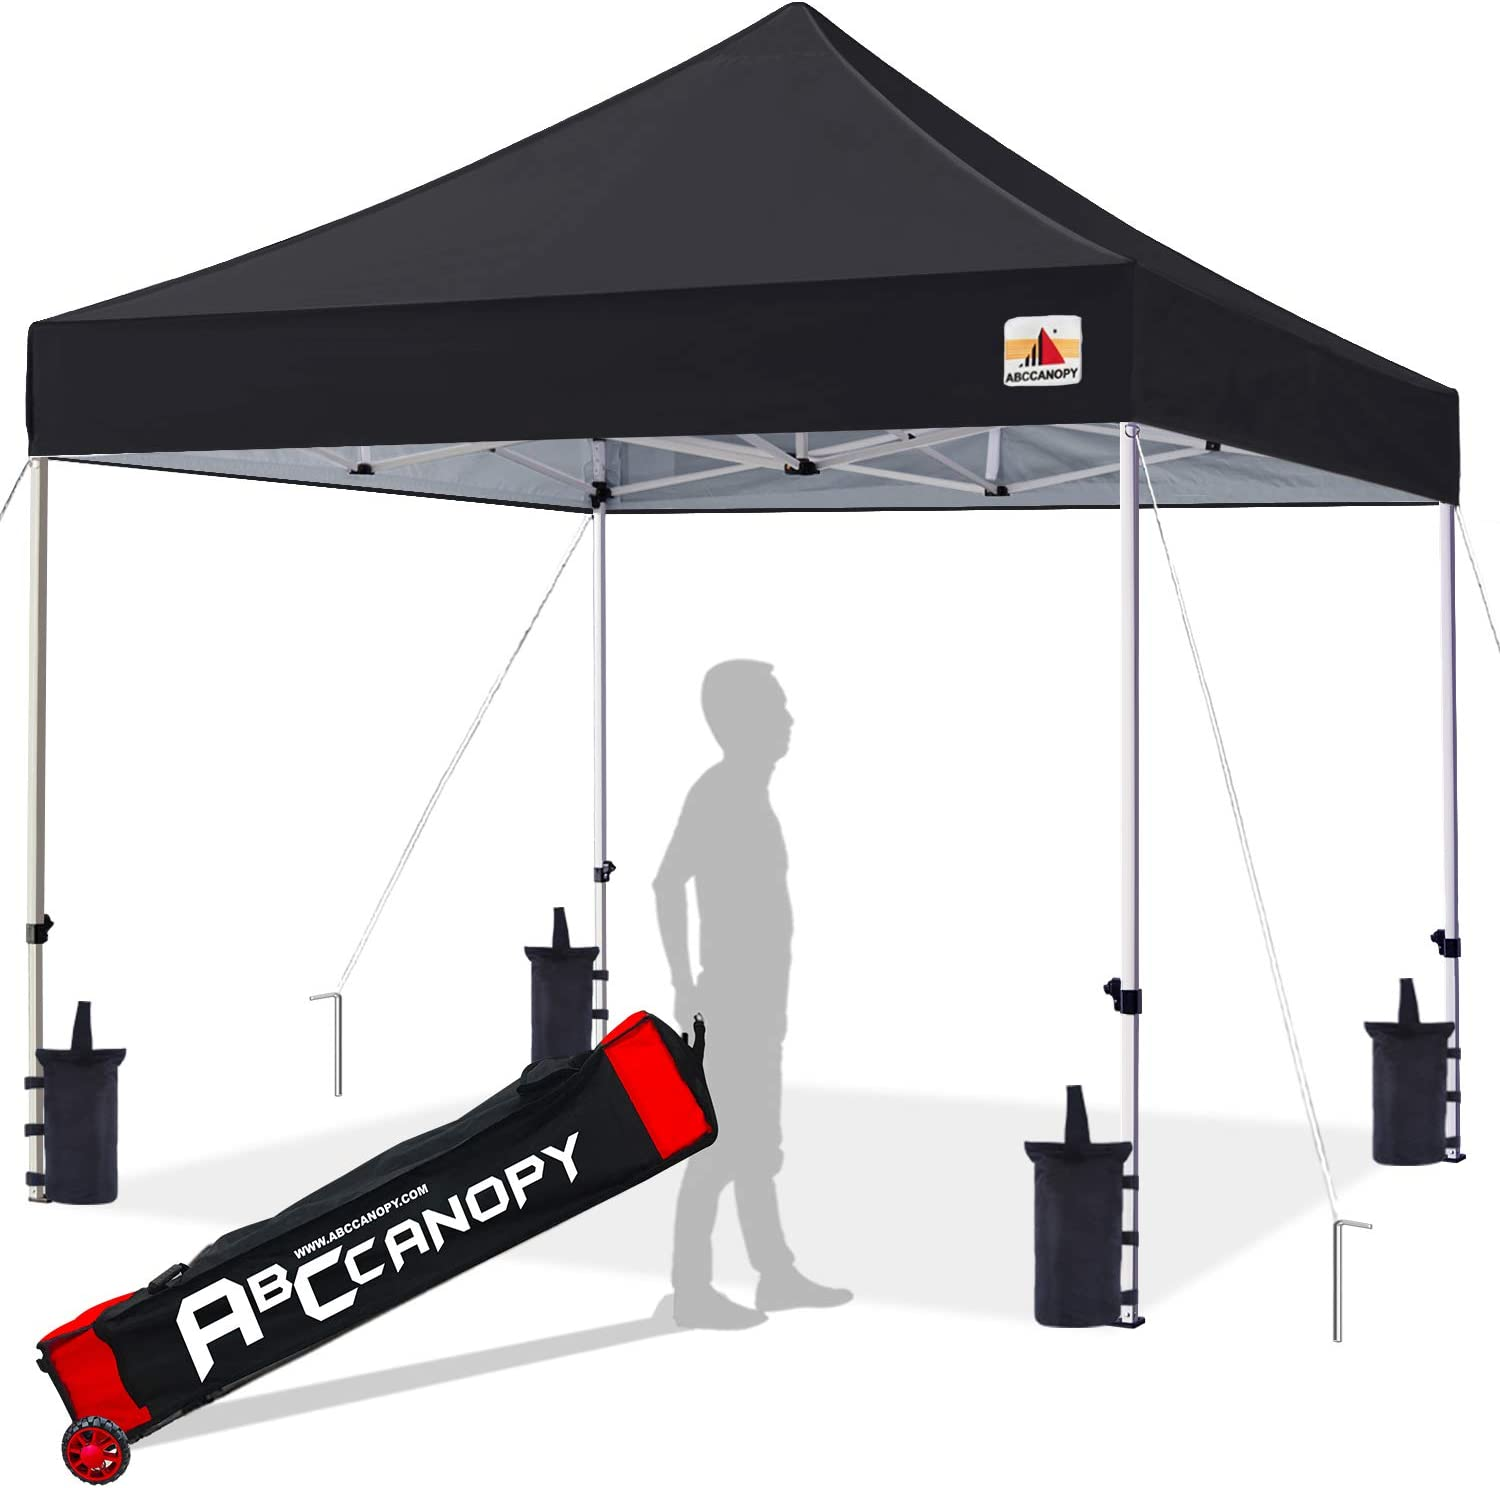 ABCCANOPY 10×10 Canopy Tent Pop up Canopy Outdoor Canopy Commercial Instant Shelter with Wheeled Carry Bag, Bonus 4 Canopy Sand Bags, Black